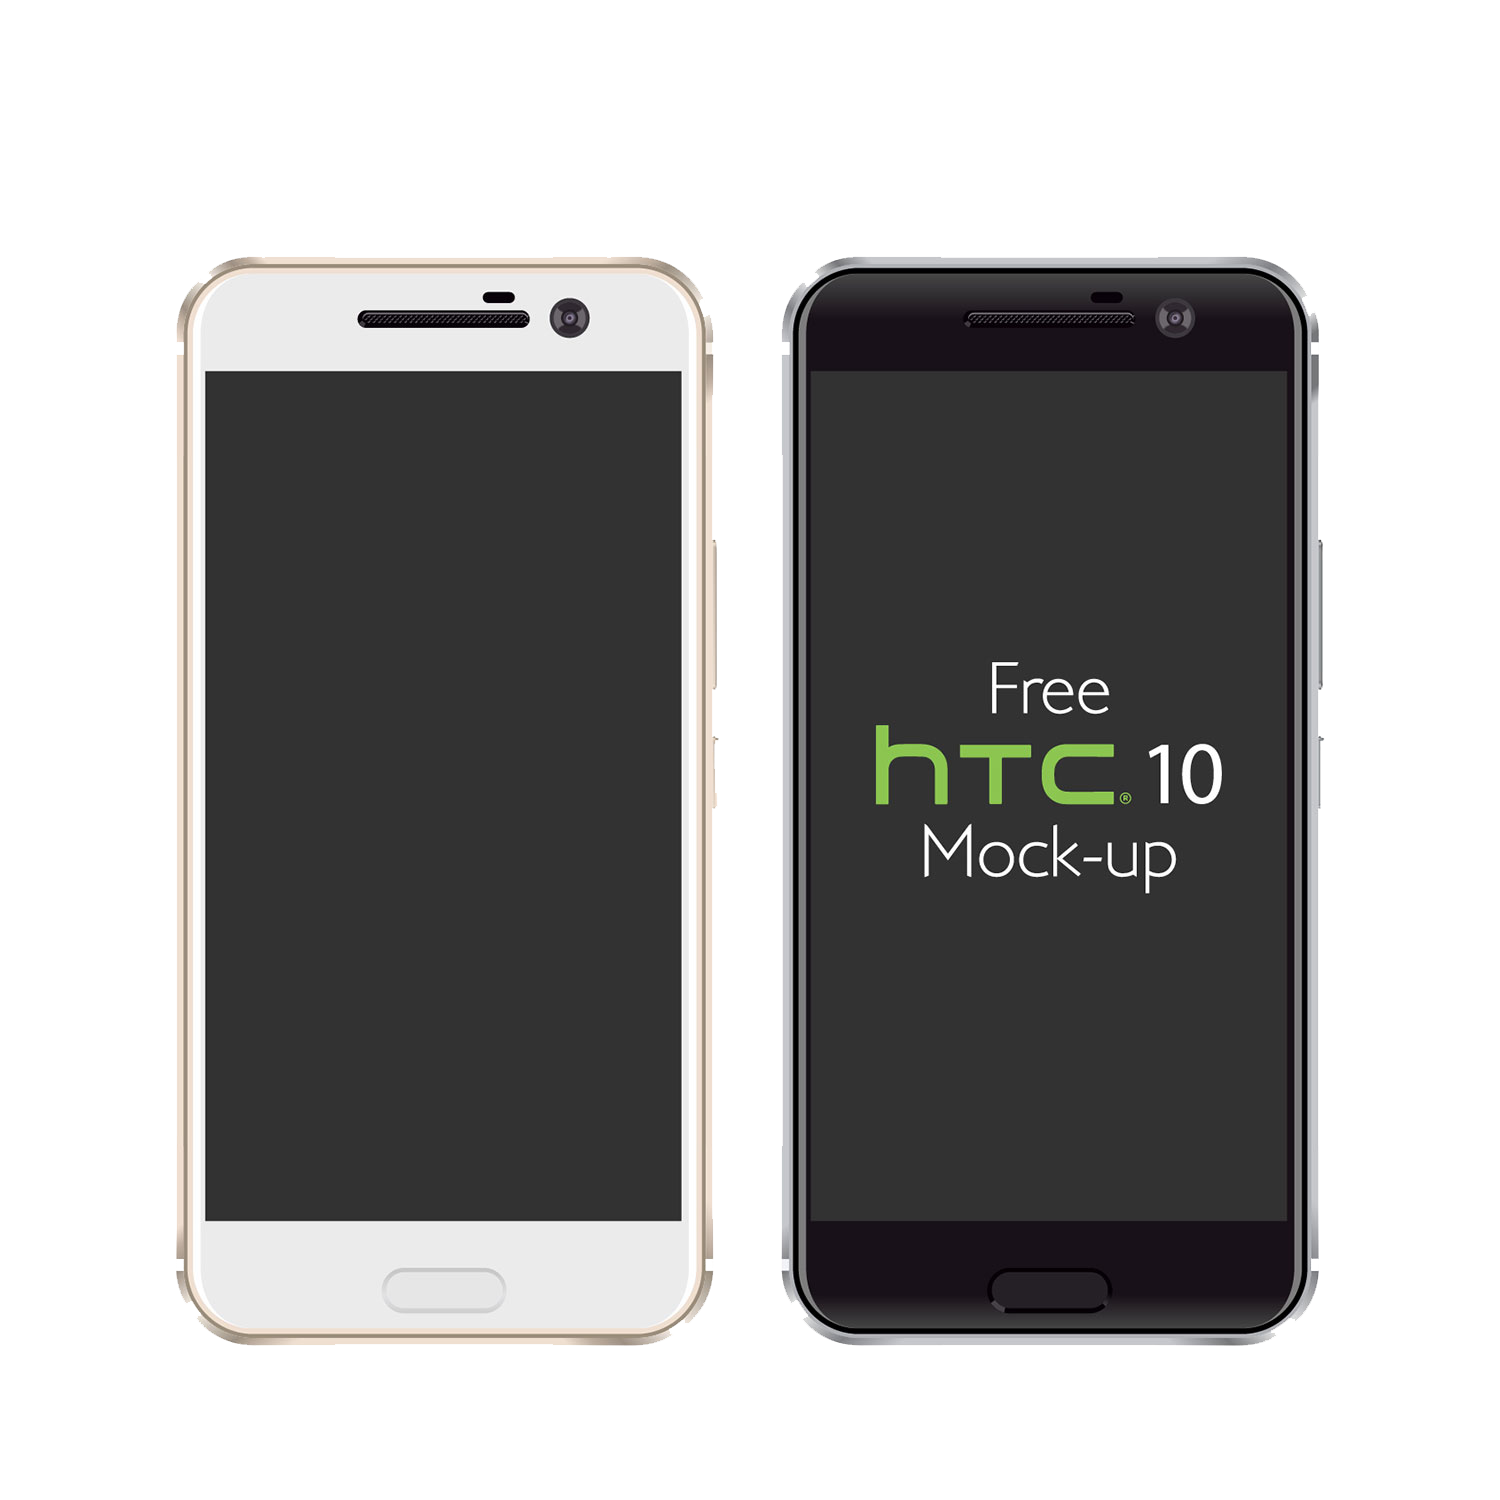 free vector htc 10 mockup ai eps 03 - Mockups For Android